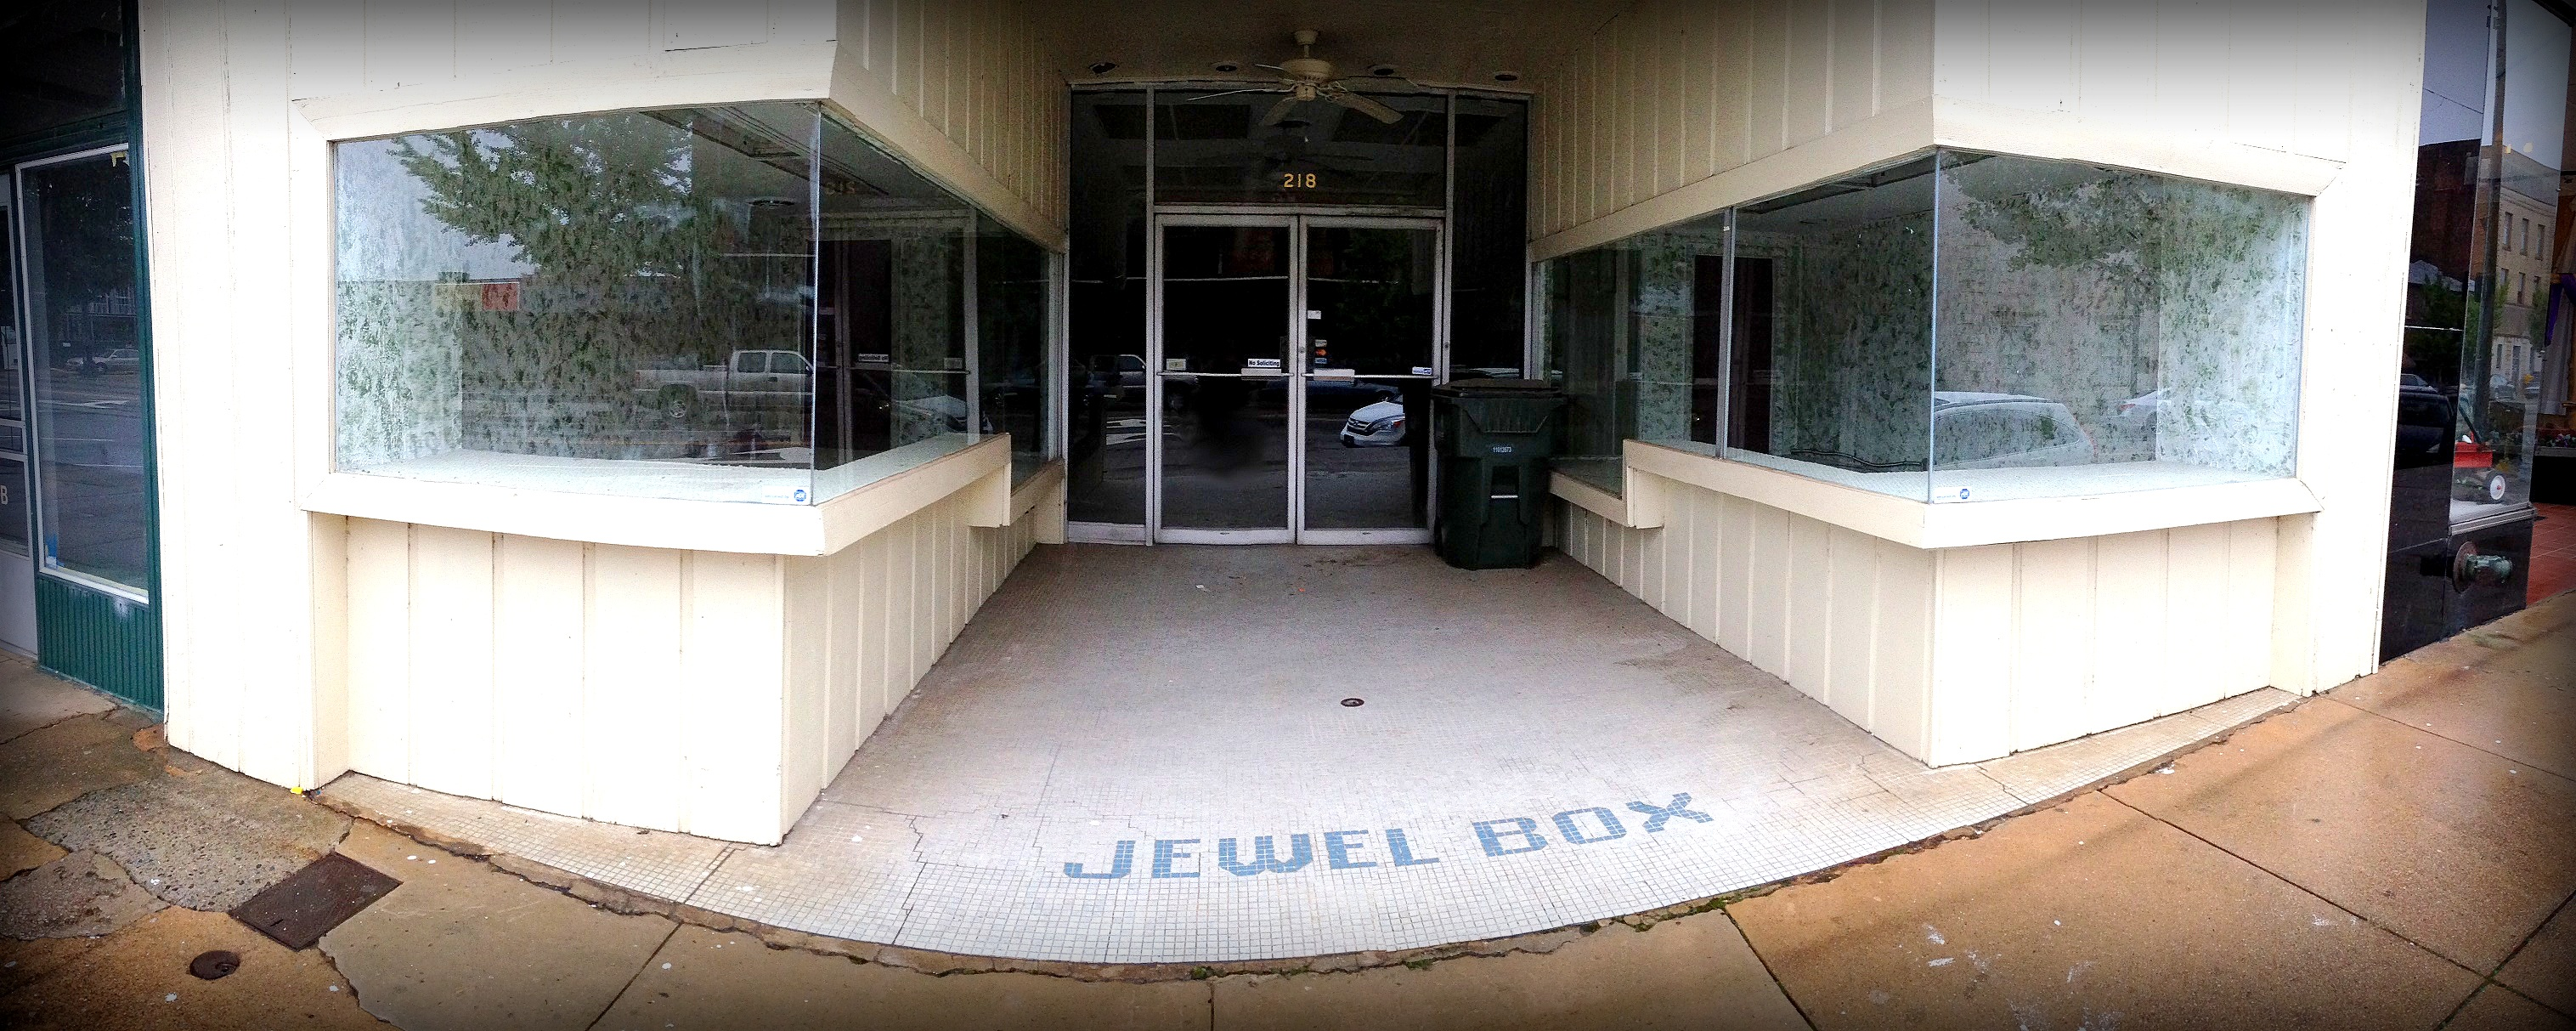 Jewel Box Abandoned Store Front